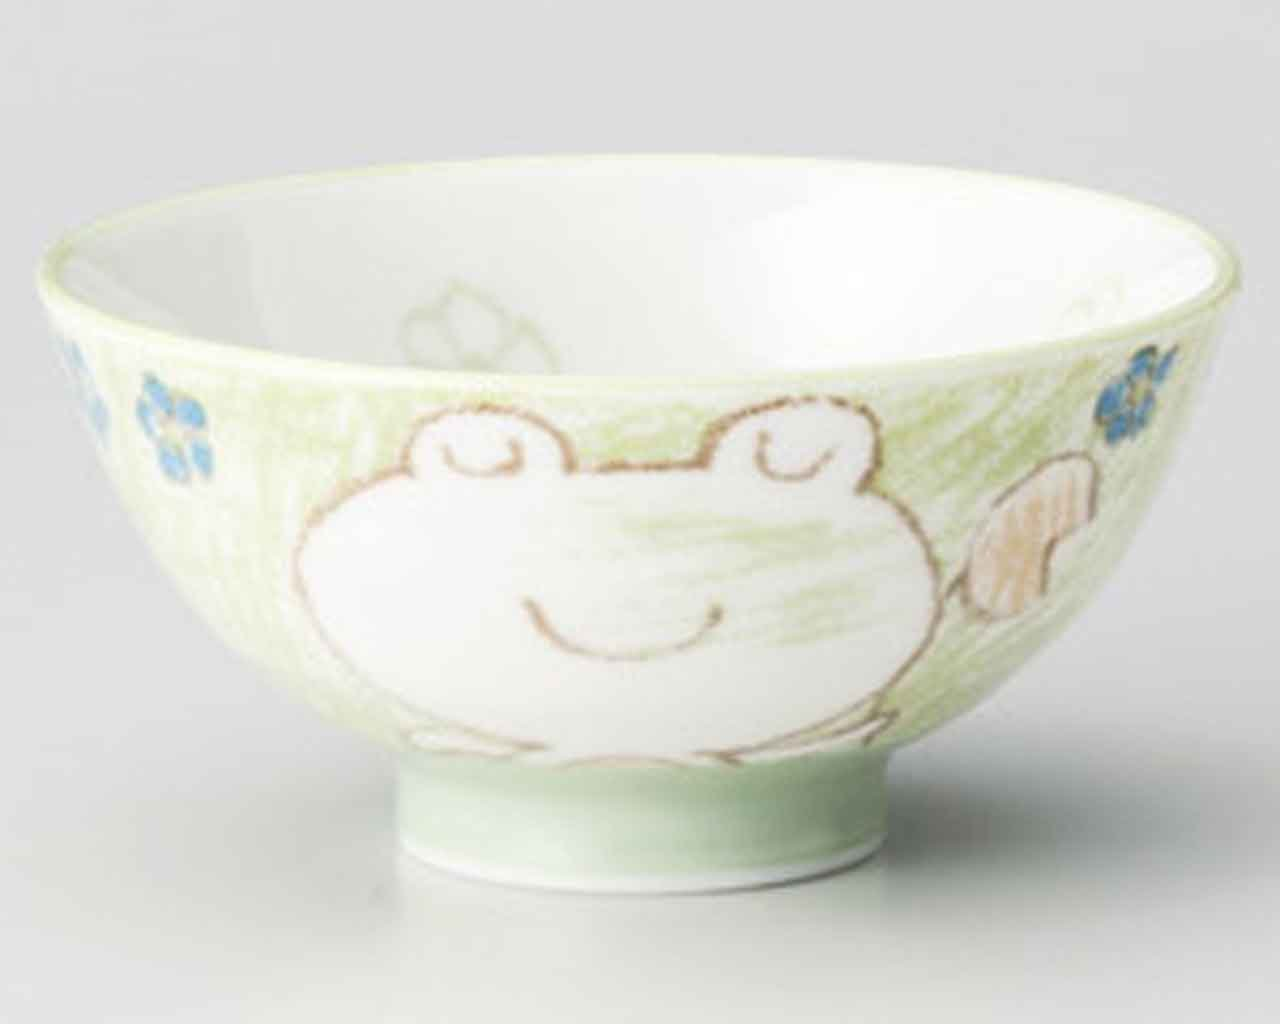 Frog Green 4.1inch Set of 2 RICE-BOWLs White porcelain Made in Japan watou.asia 4562495498213